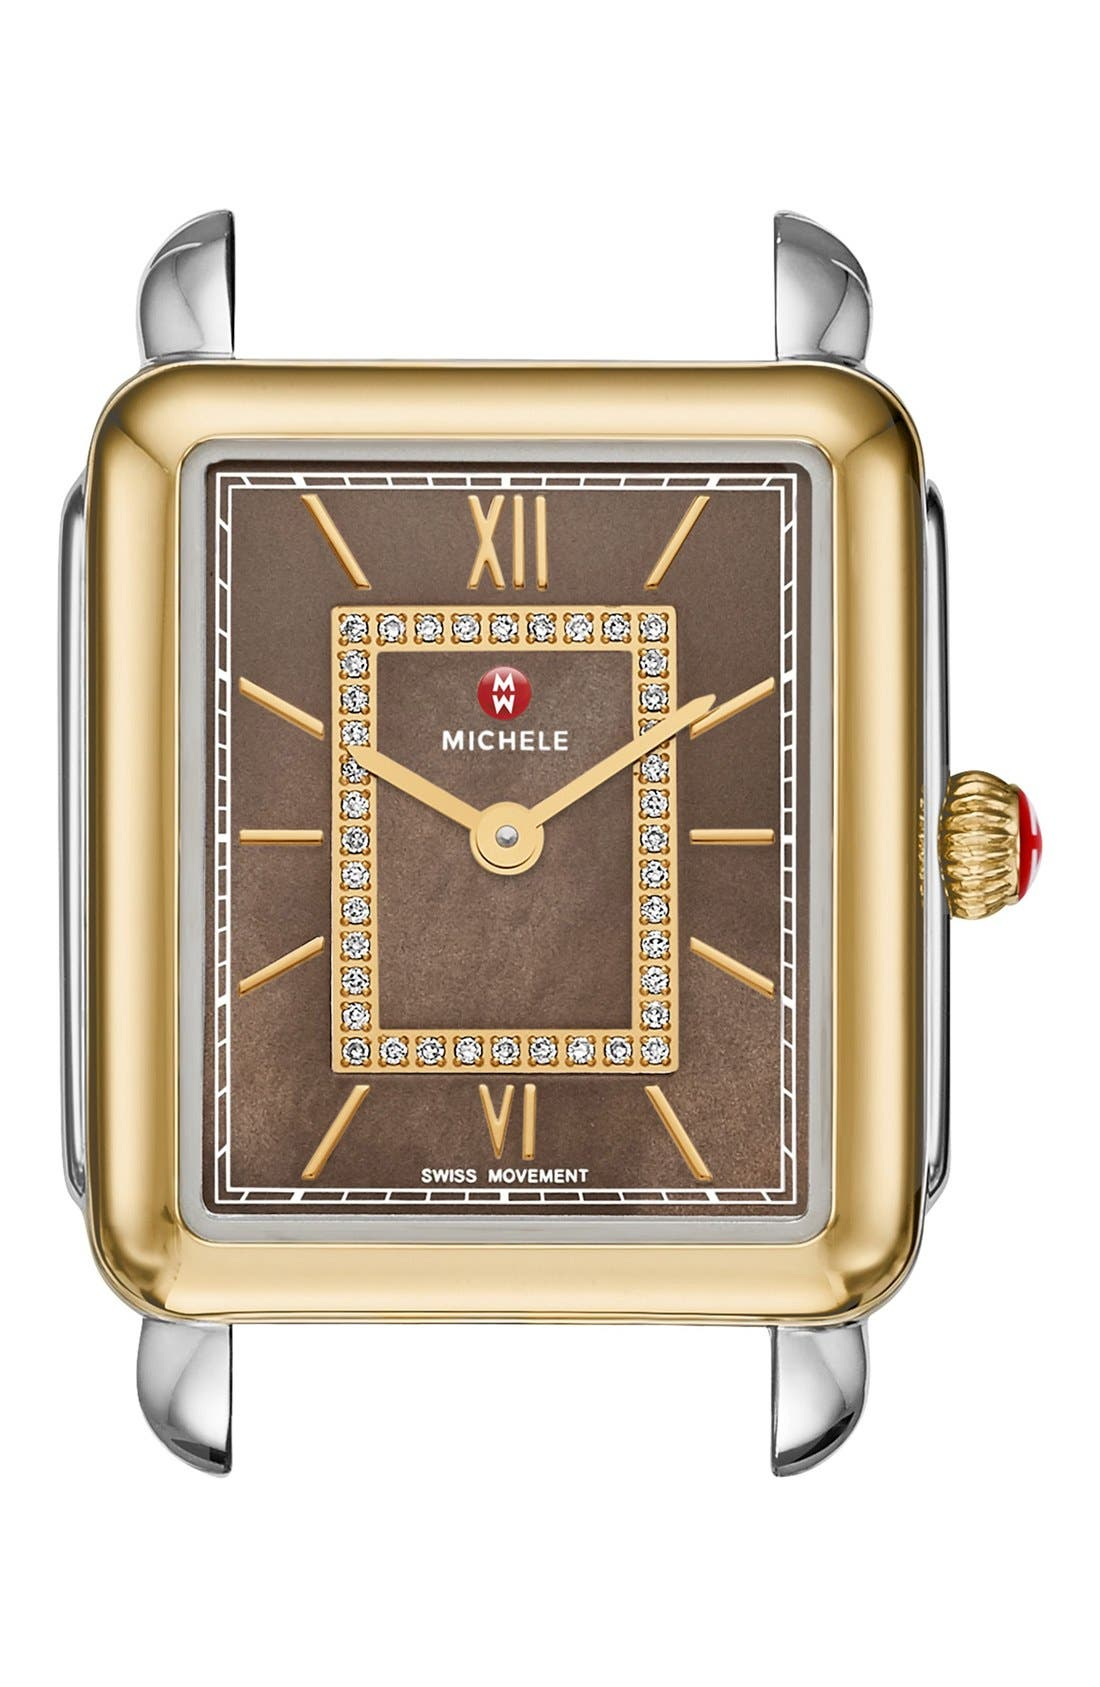 Main Image - MICHELE Deco II Diamond Dial Watch Case, 26mm x 28mm